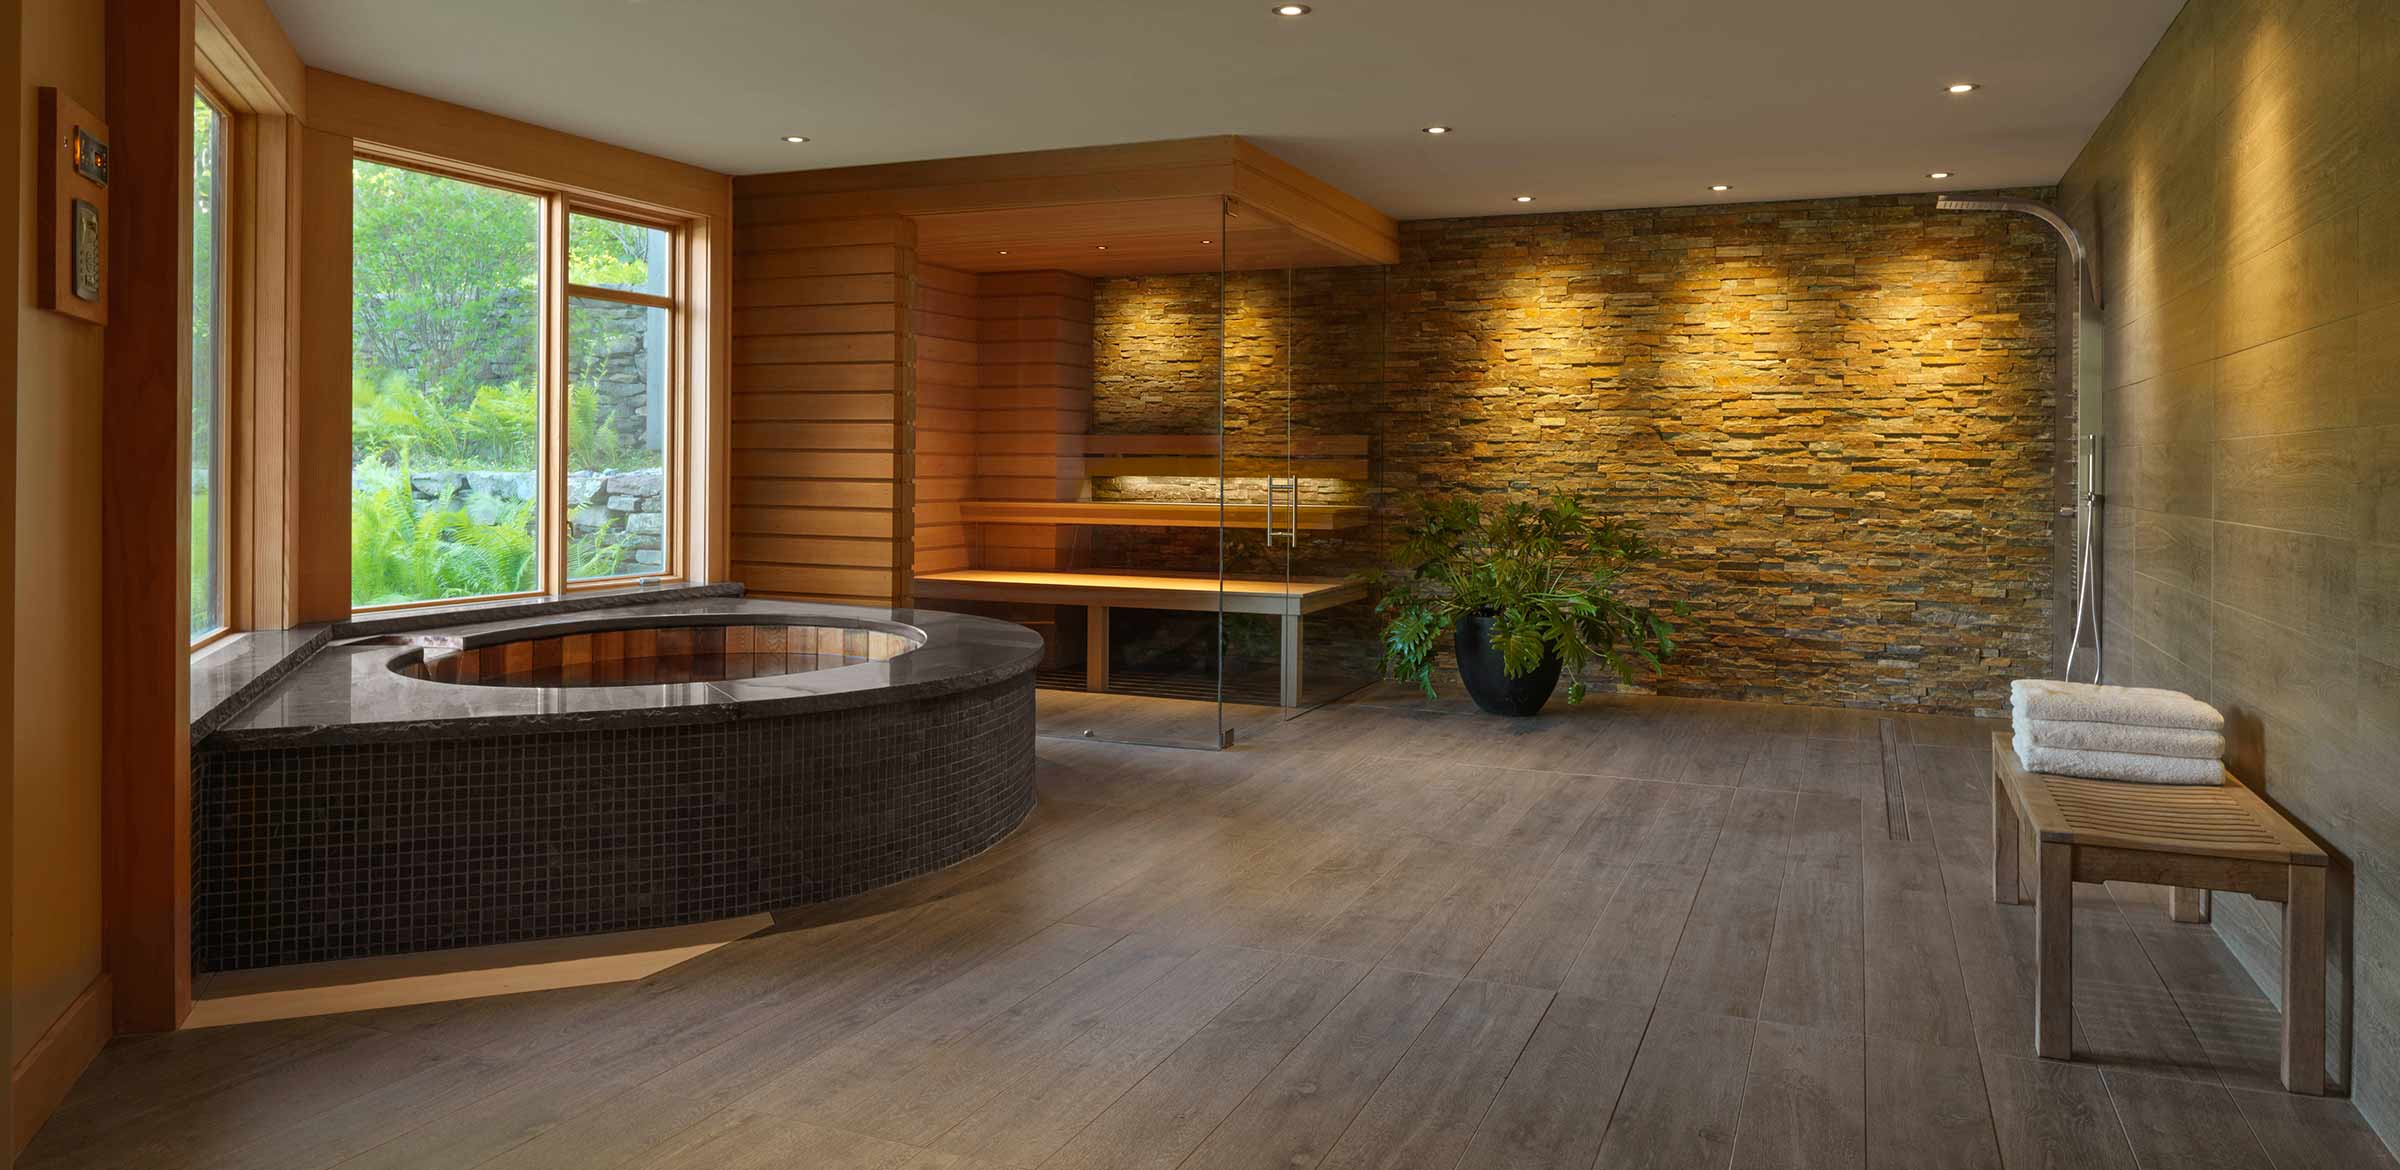 large spa with bathroom and sauna